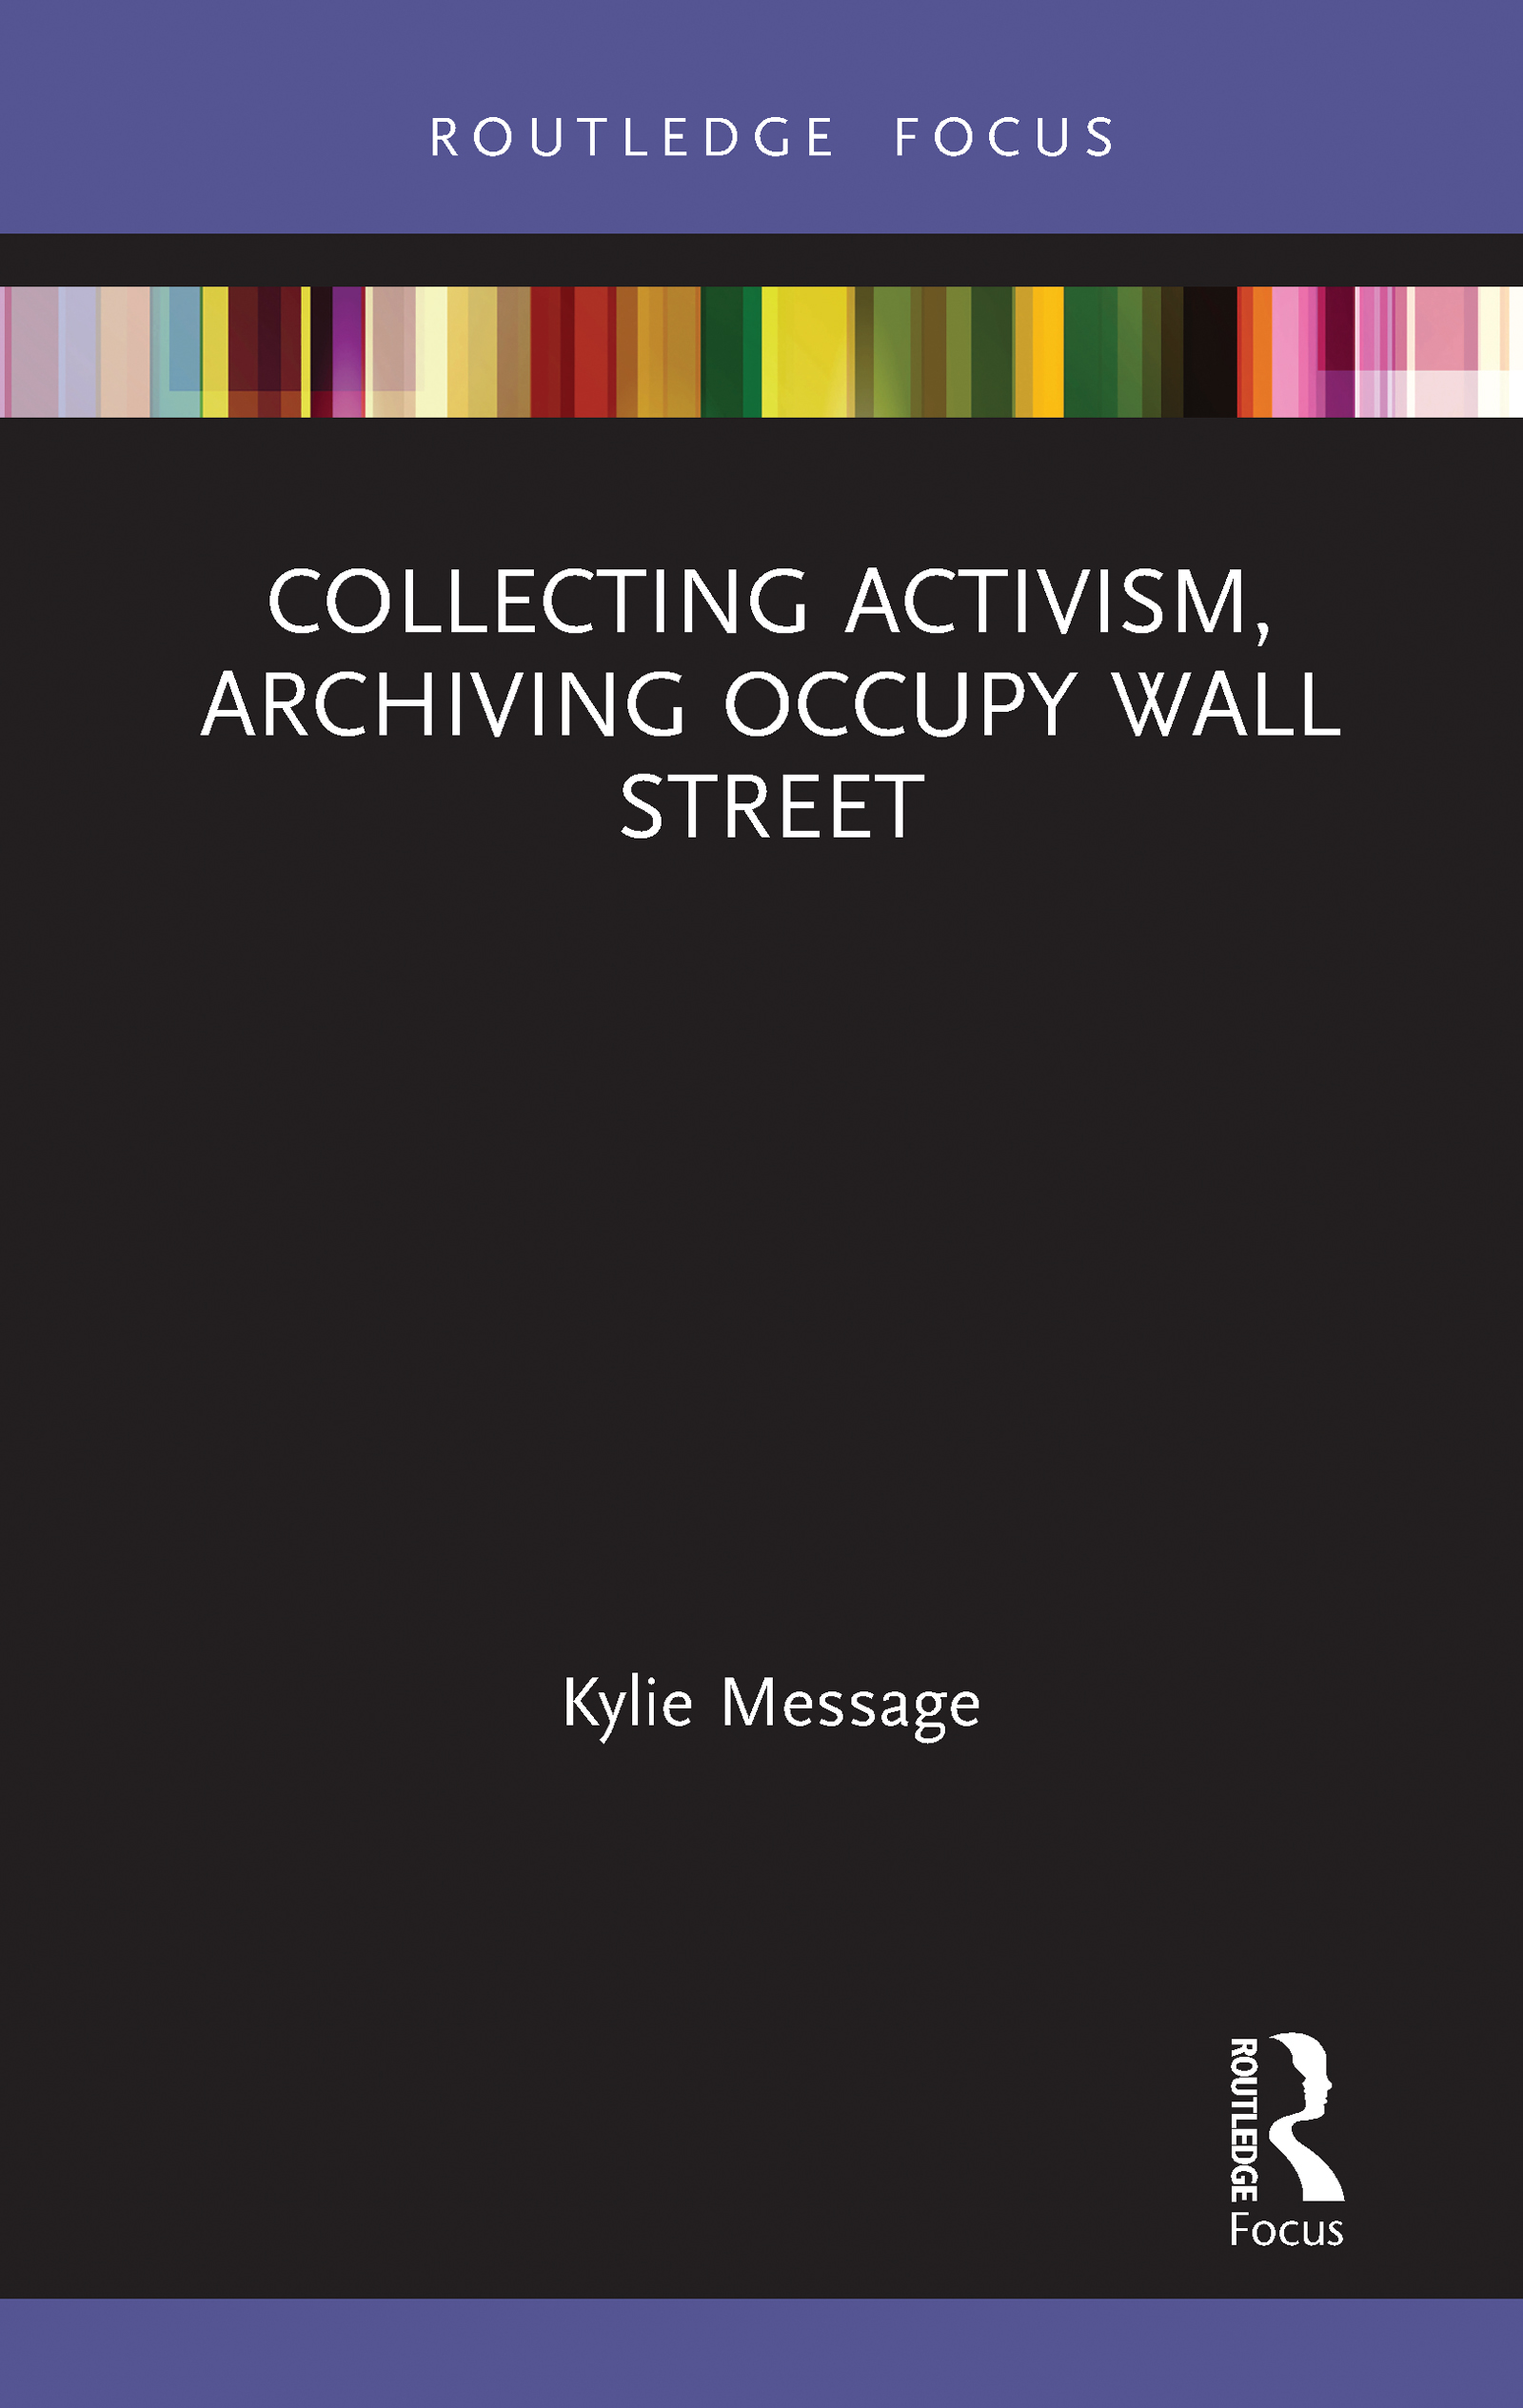 Collecting Activism, Archiving Occupy Wall Street